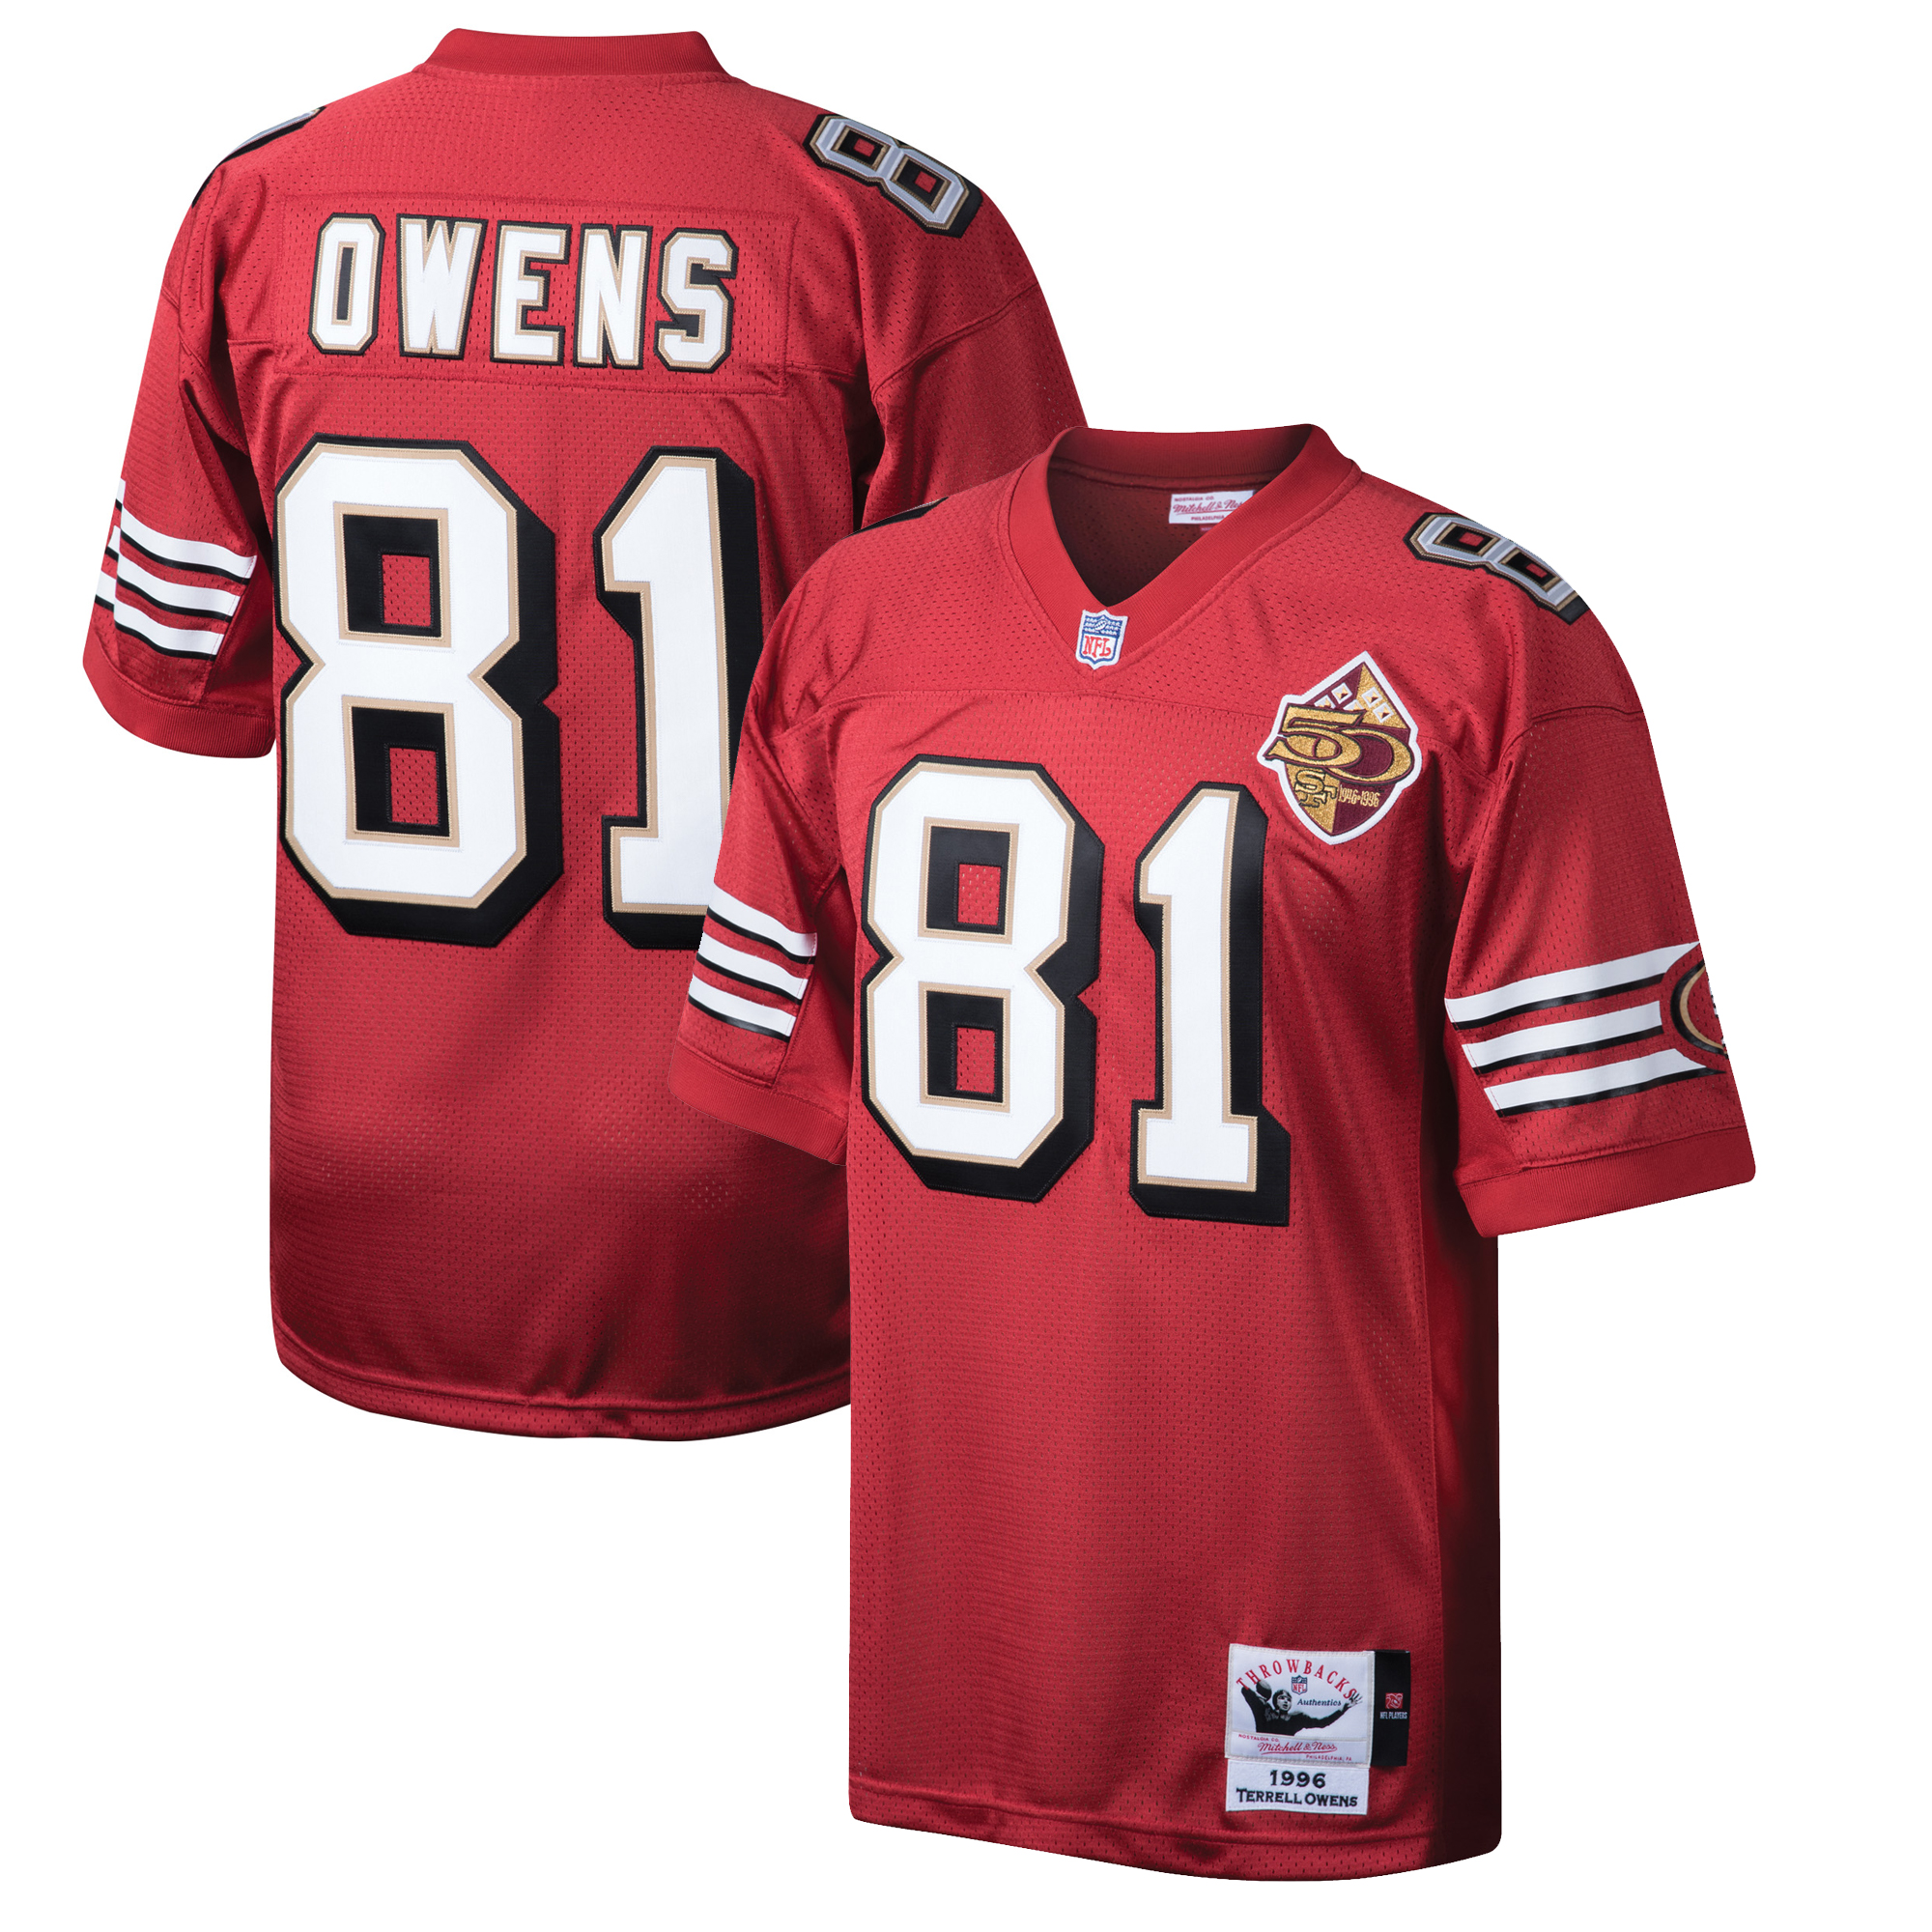 Terrell Owens San Francisco 49ers Mitchell & Ness Throwback Authentic Retired Player Jersey - Scarlet